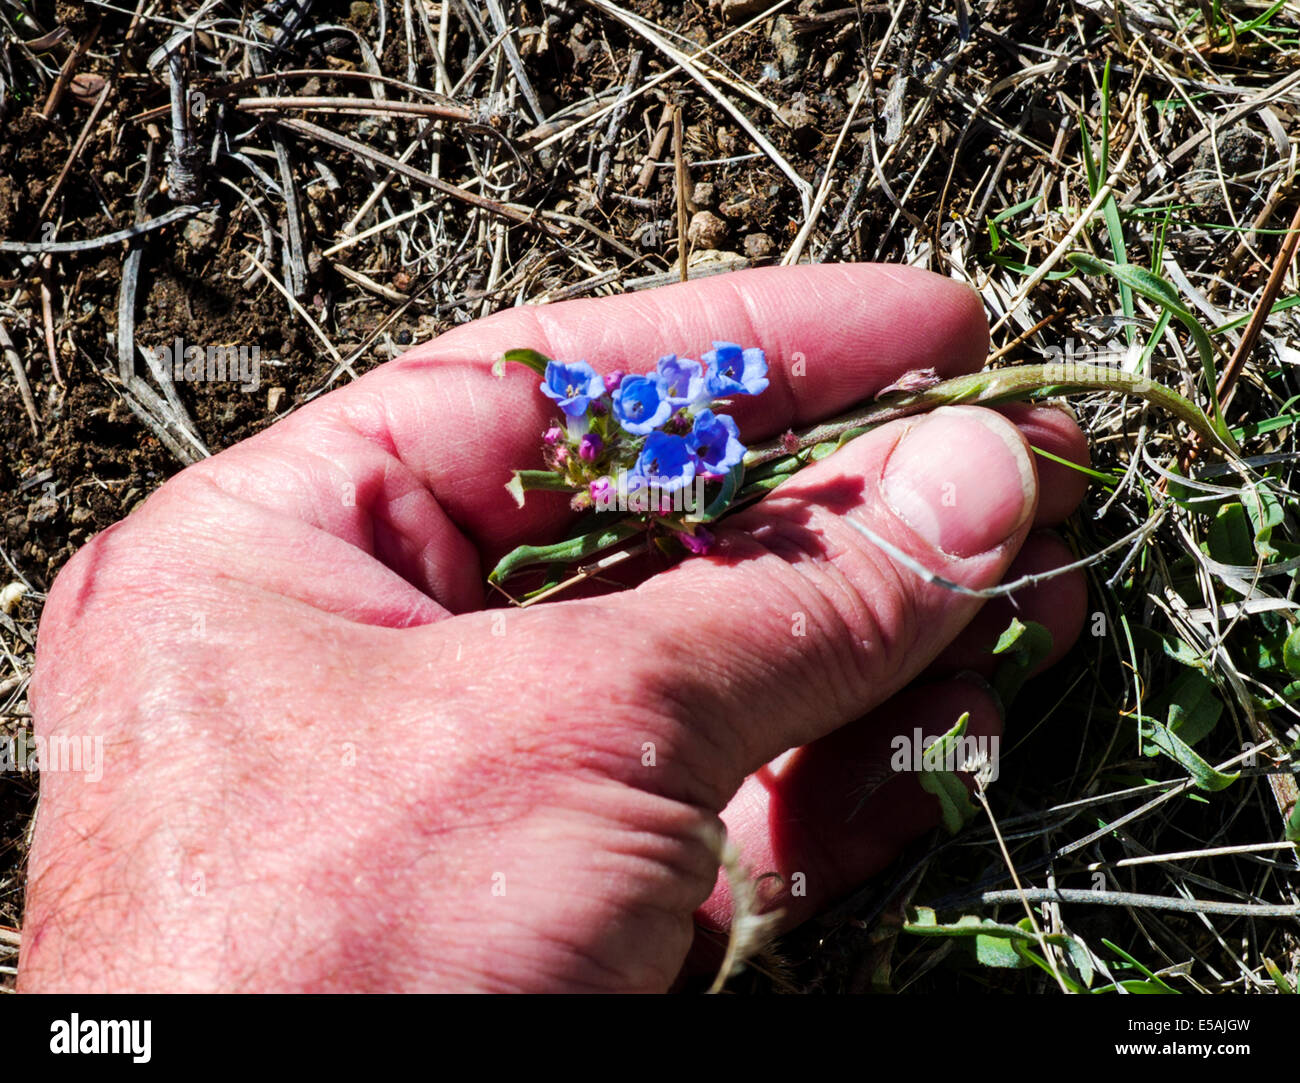 Hand holding Mertensia lanceolata, Foothills Mertensia, Boraginaceae, Borage wildflowers in bloom, Central Colorado, - Stock Image